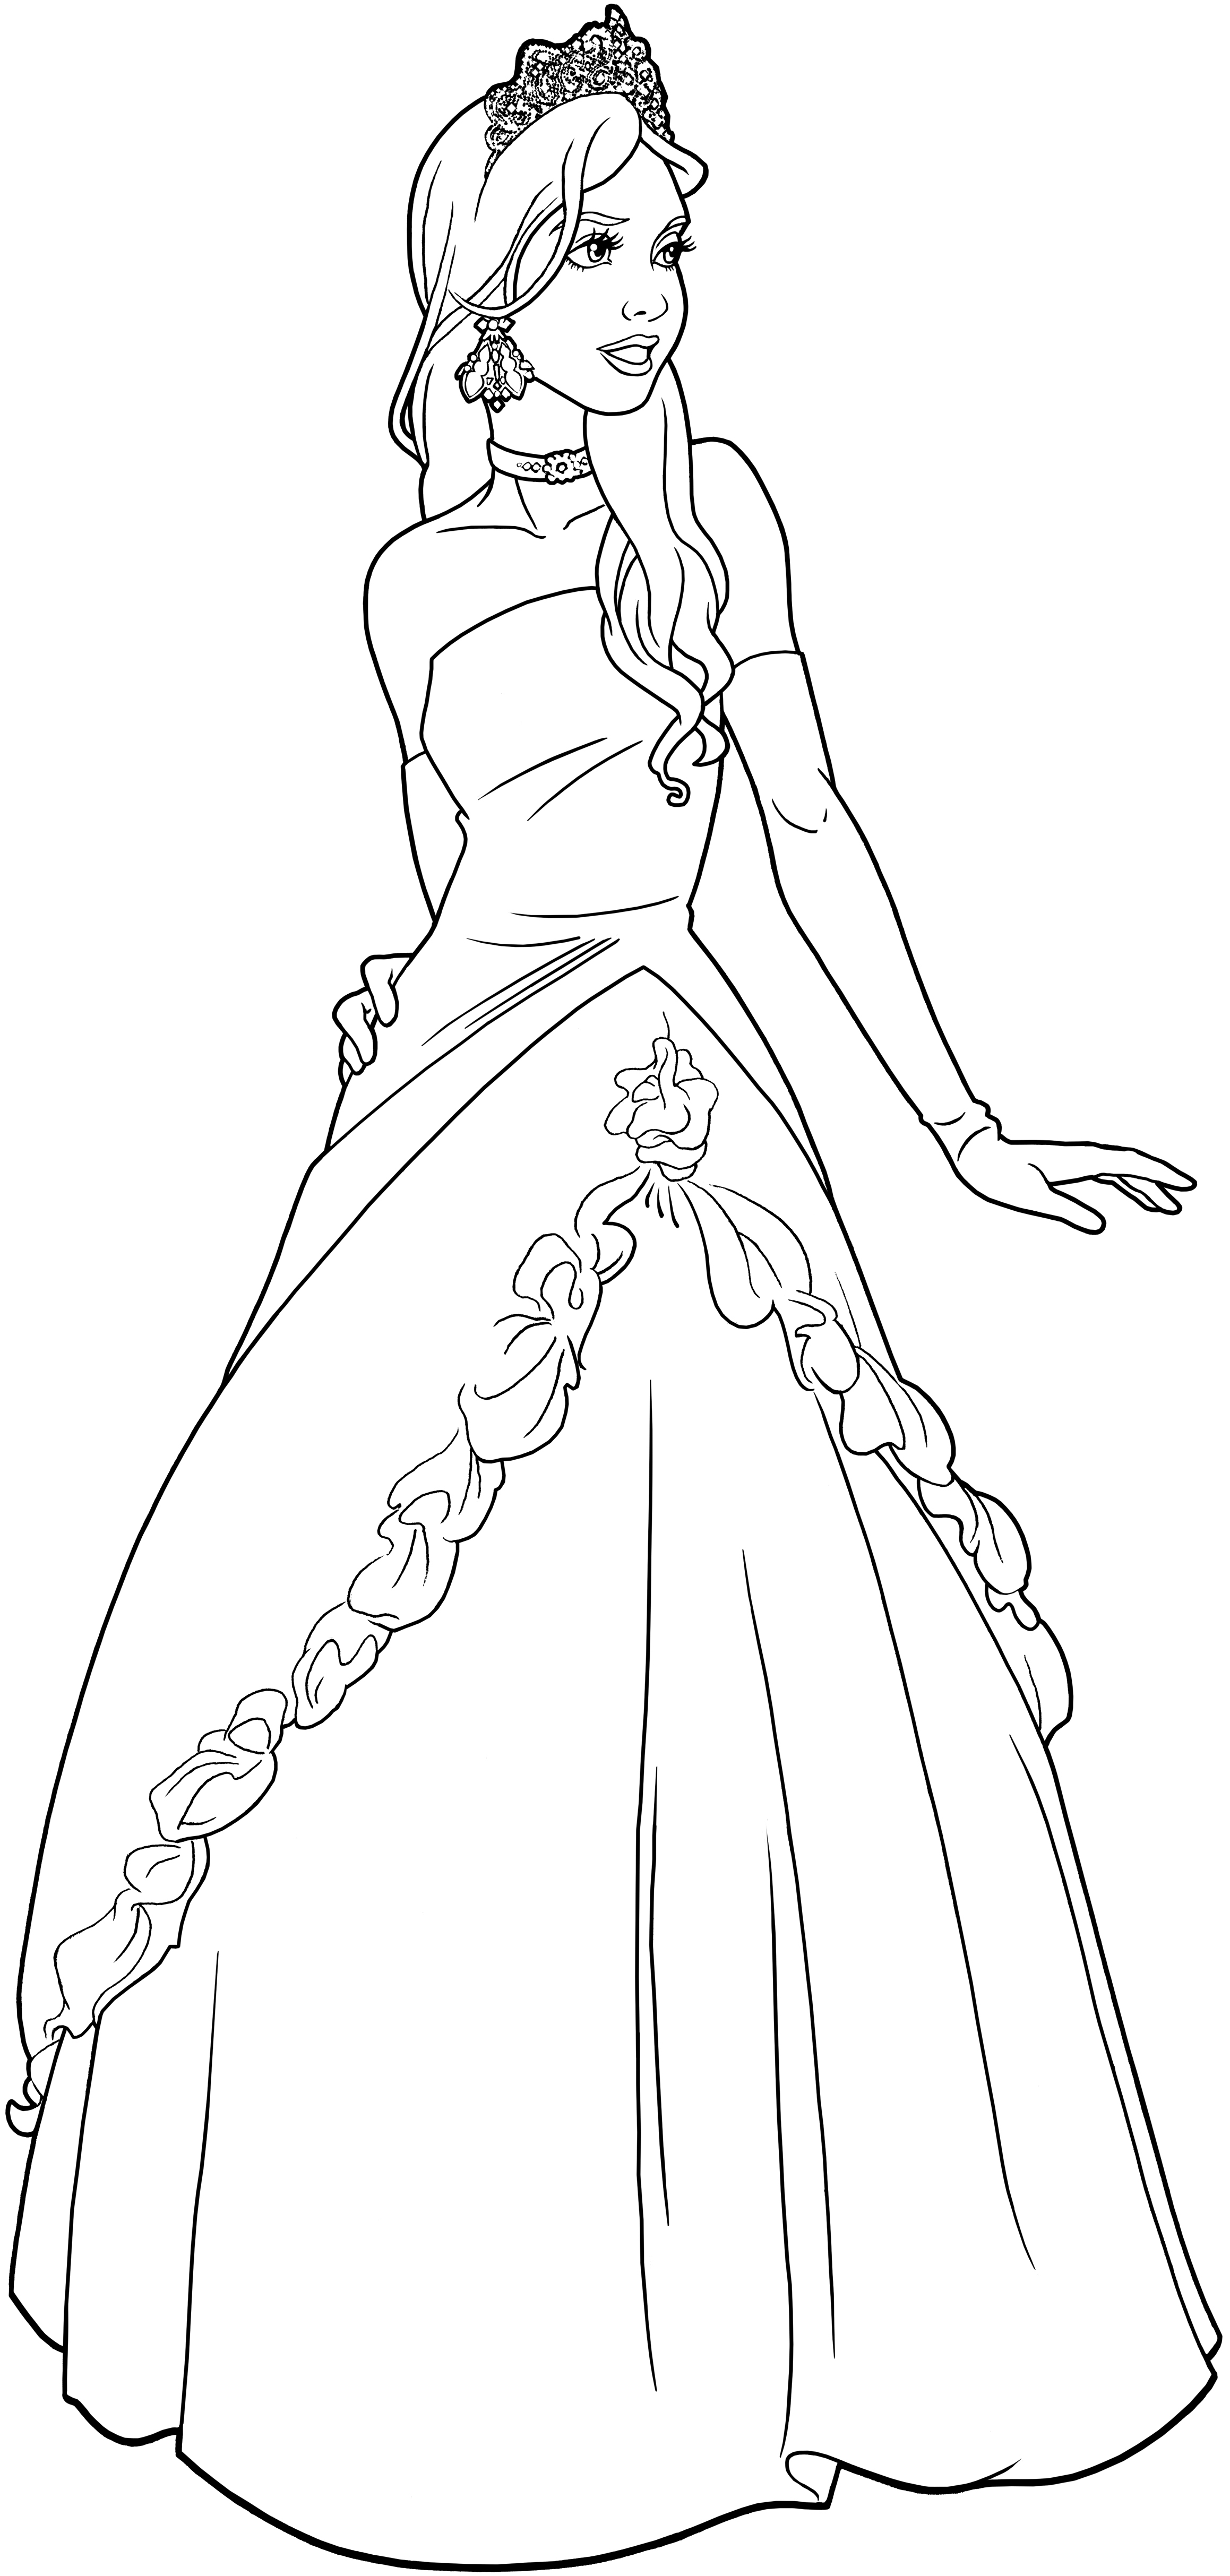 2317x4853 Princess Drawing Images Drawing Of Princess How To Draw Snow White